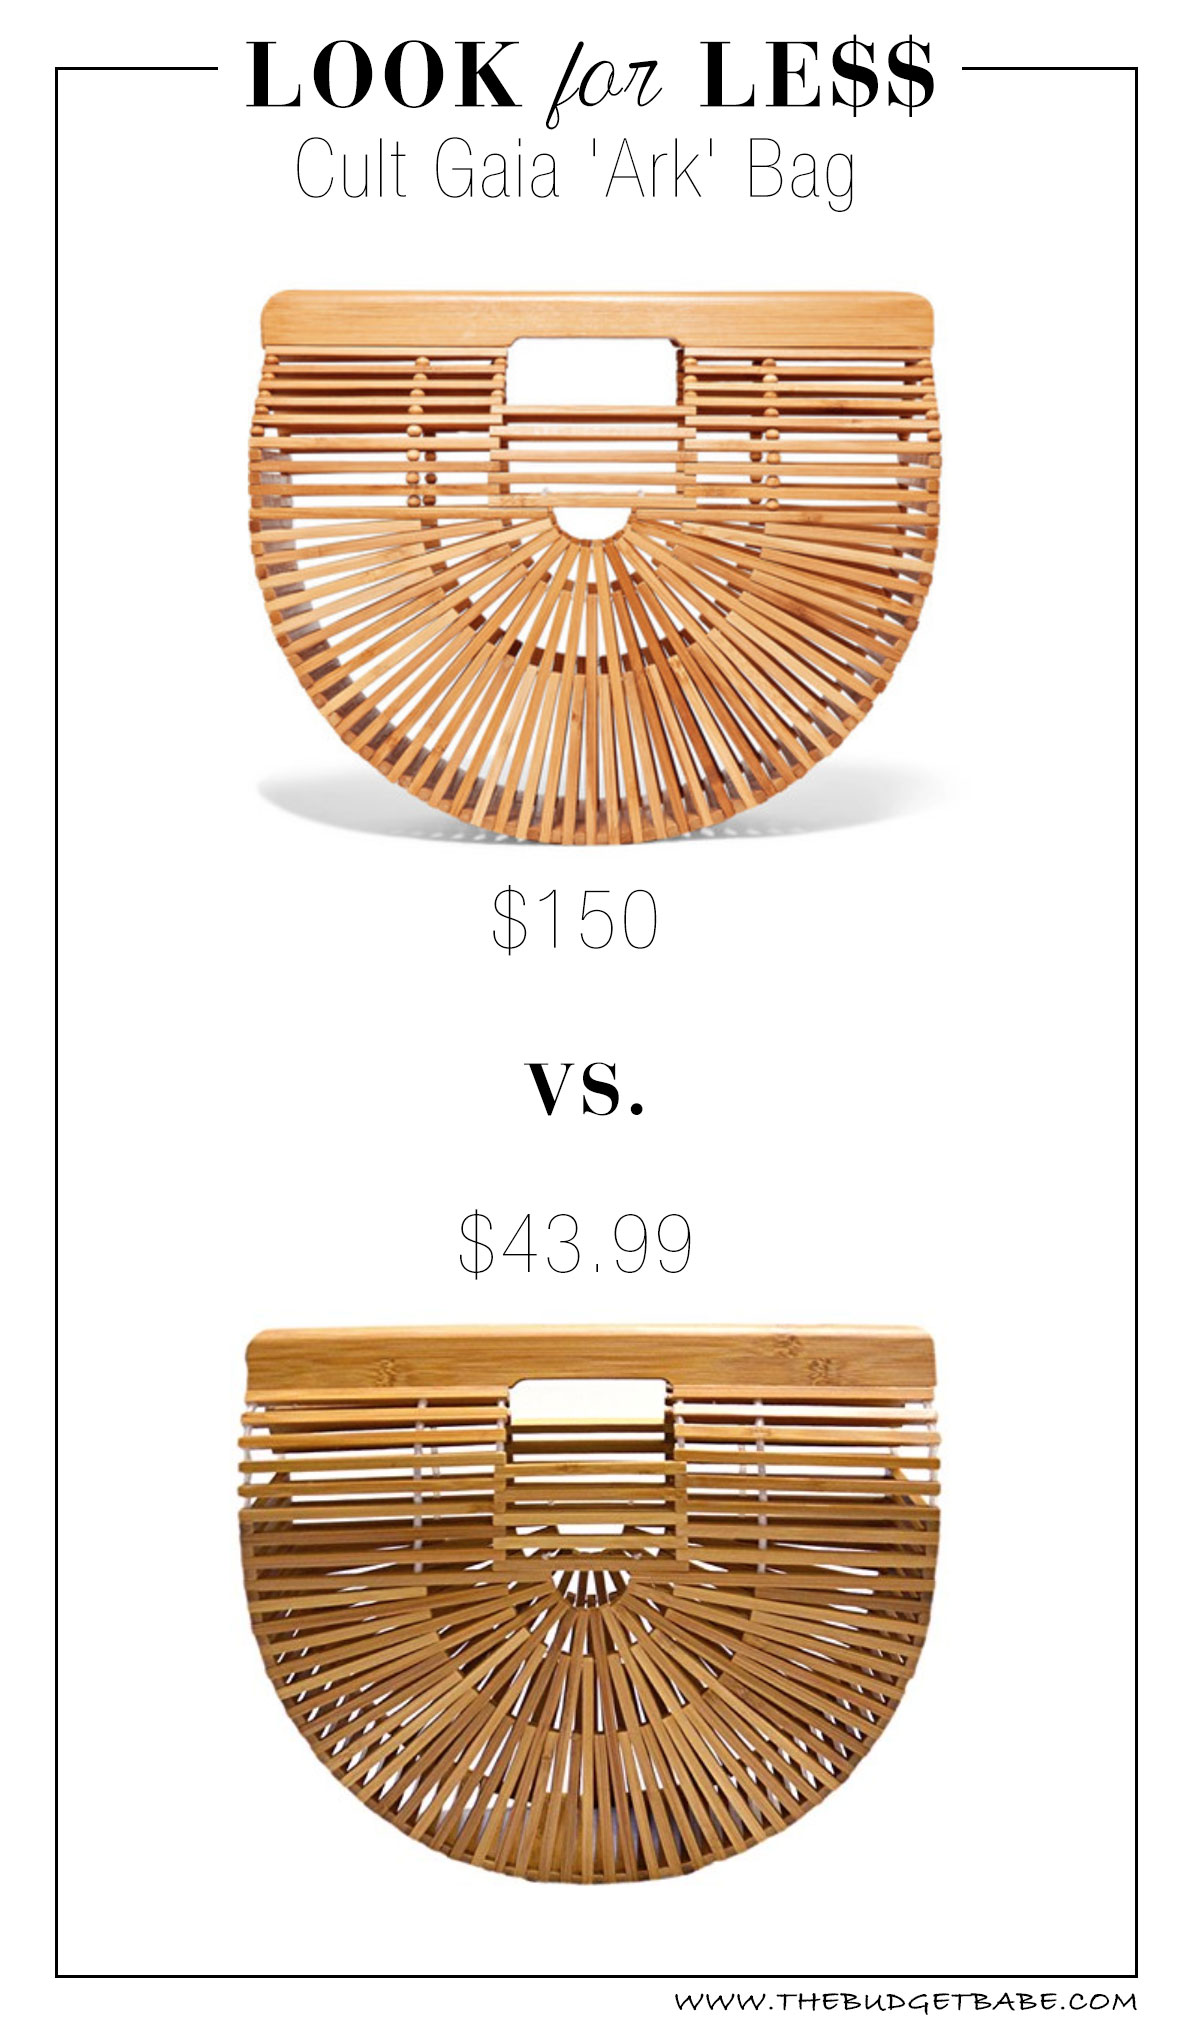 Cult Gaia 'Ark' bamboo clutch bag dupe knockoff look for less